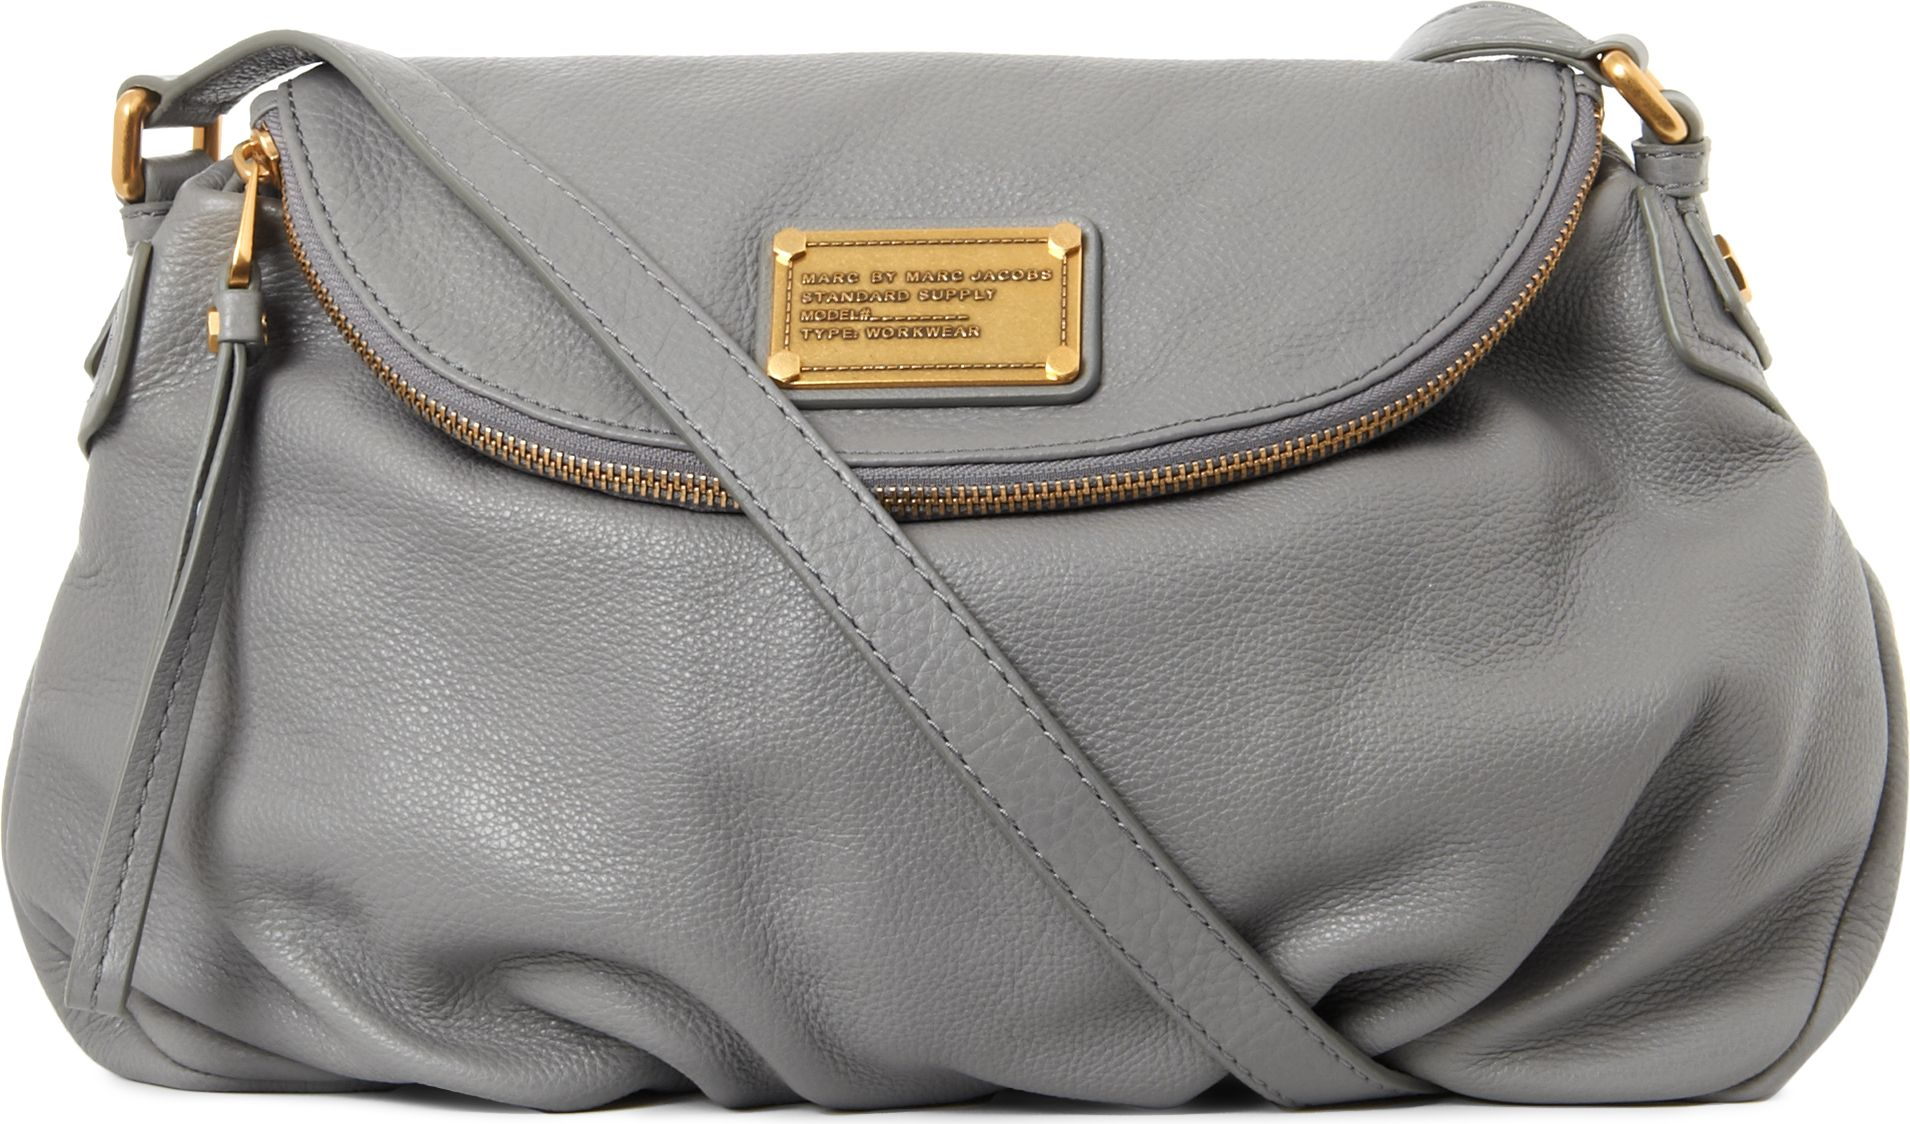 Gallery Previously Sold At Selfridges Women S Marc Jacobs Natasha